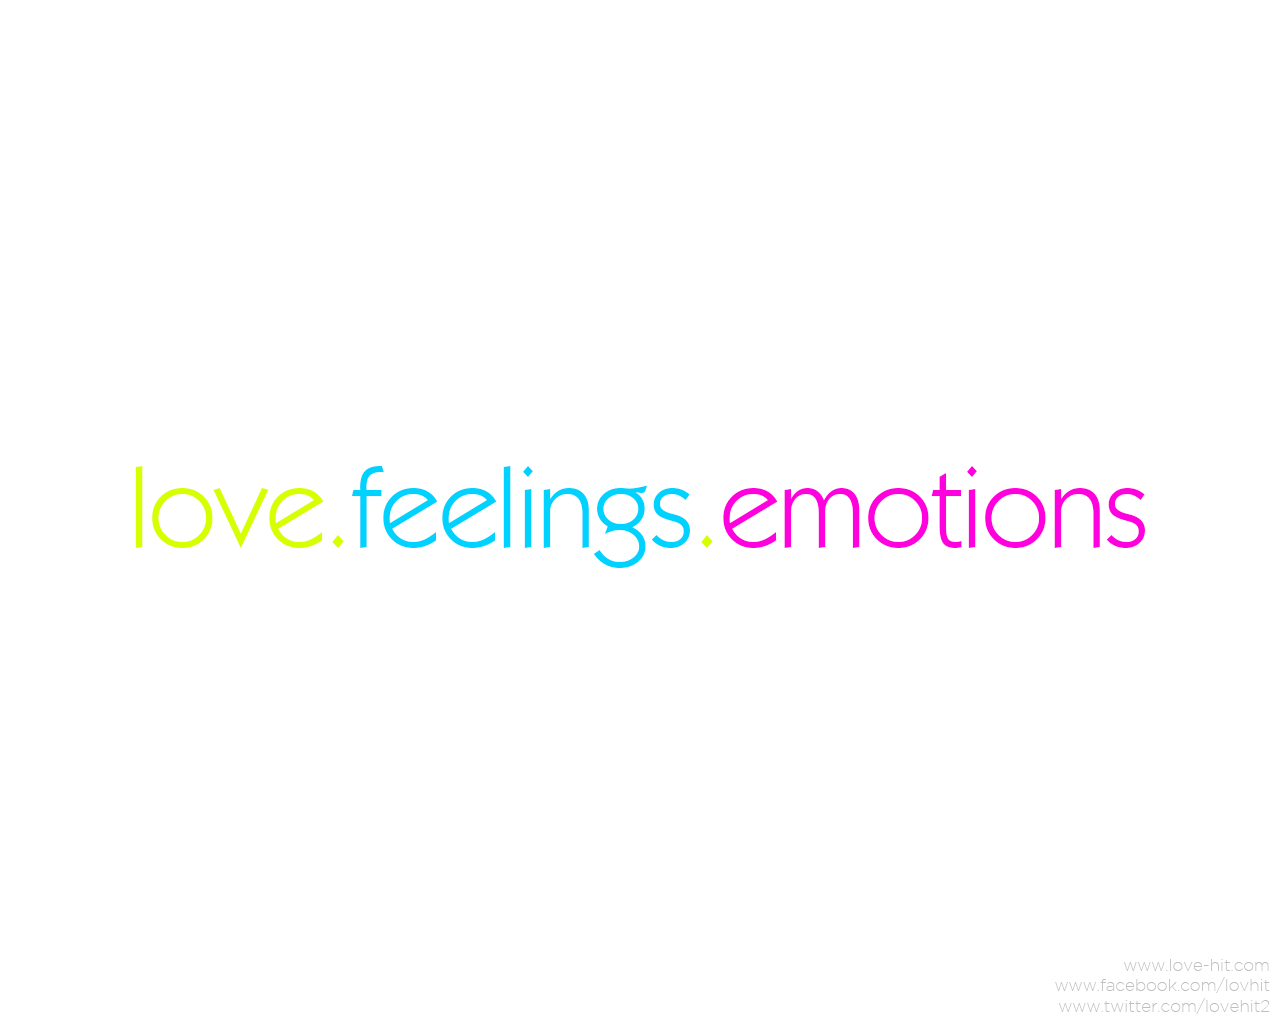 Love: feelings and emotions